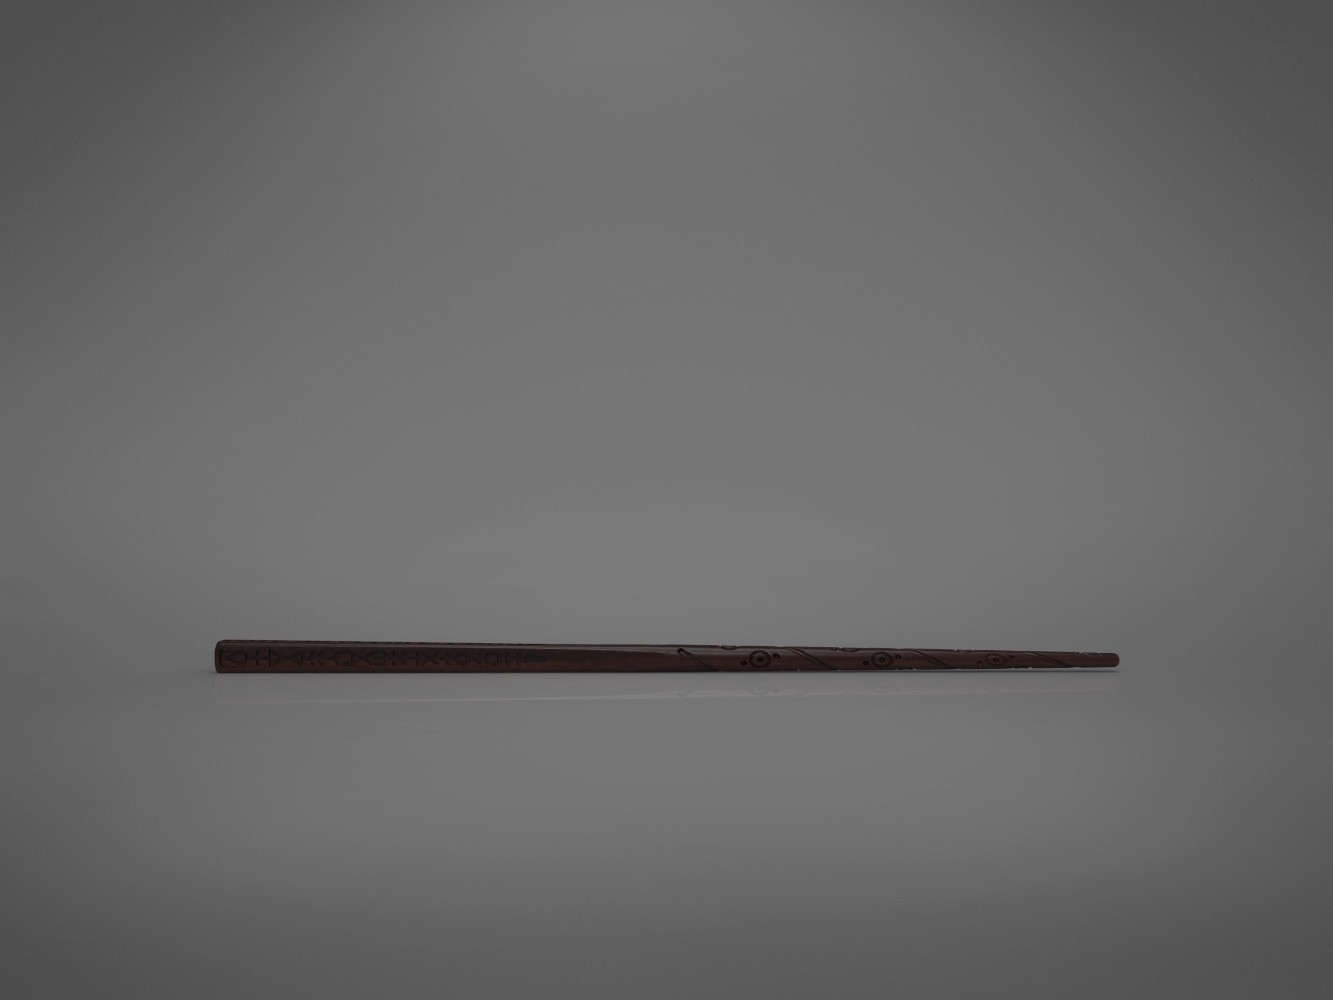 Black-front_perspective.640.jpg Download STL file Sirius Black wand - Harry Potter films 3D print model • 3D print object, 3D-mon